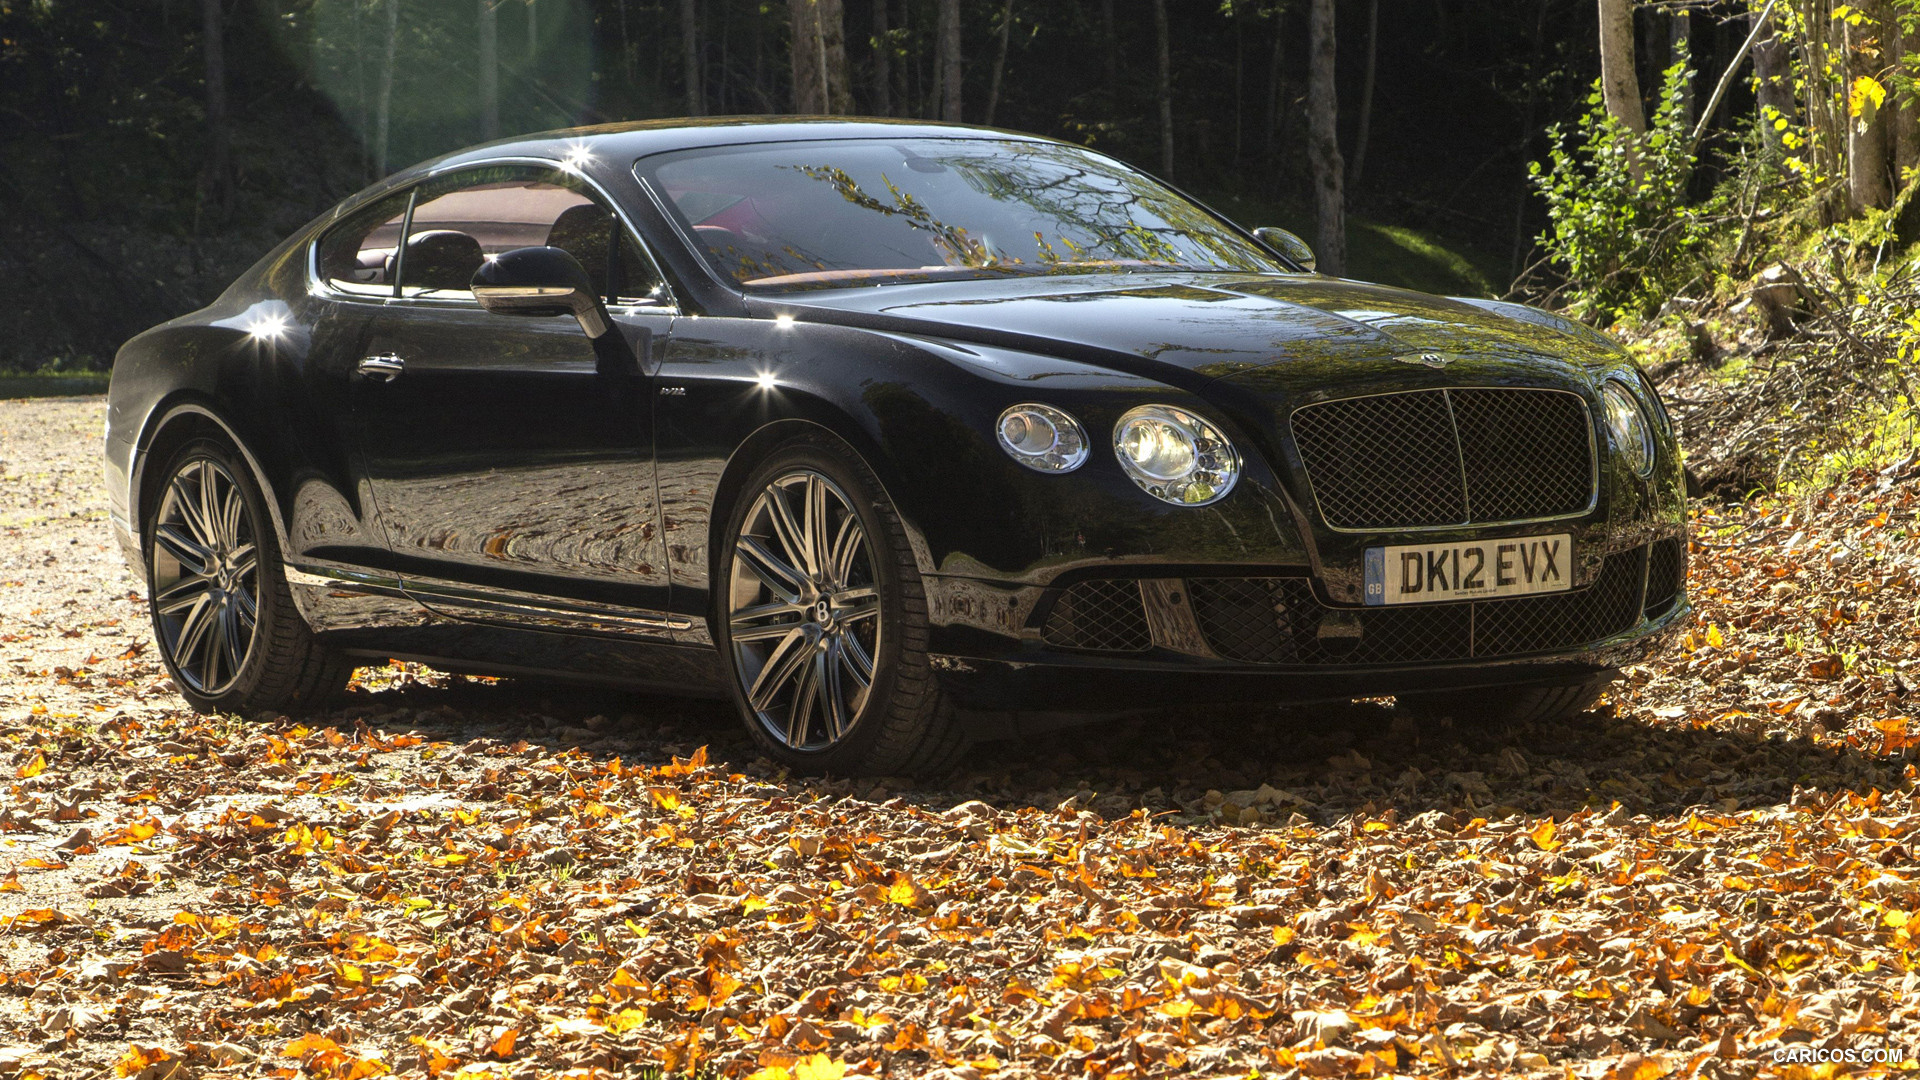 2013 bentley continental gt speed information and photos 2013 bentley continental gt speed 13 bentley continental gt speed 13 vanachro Choice Image